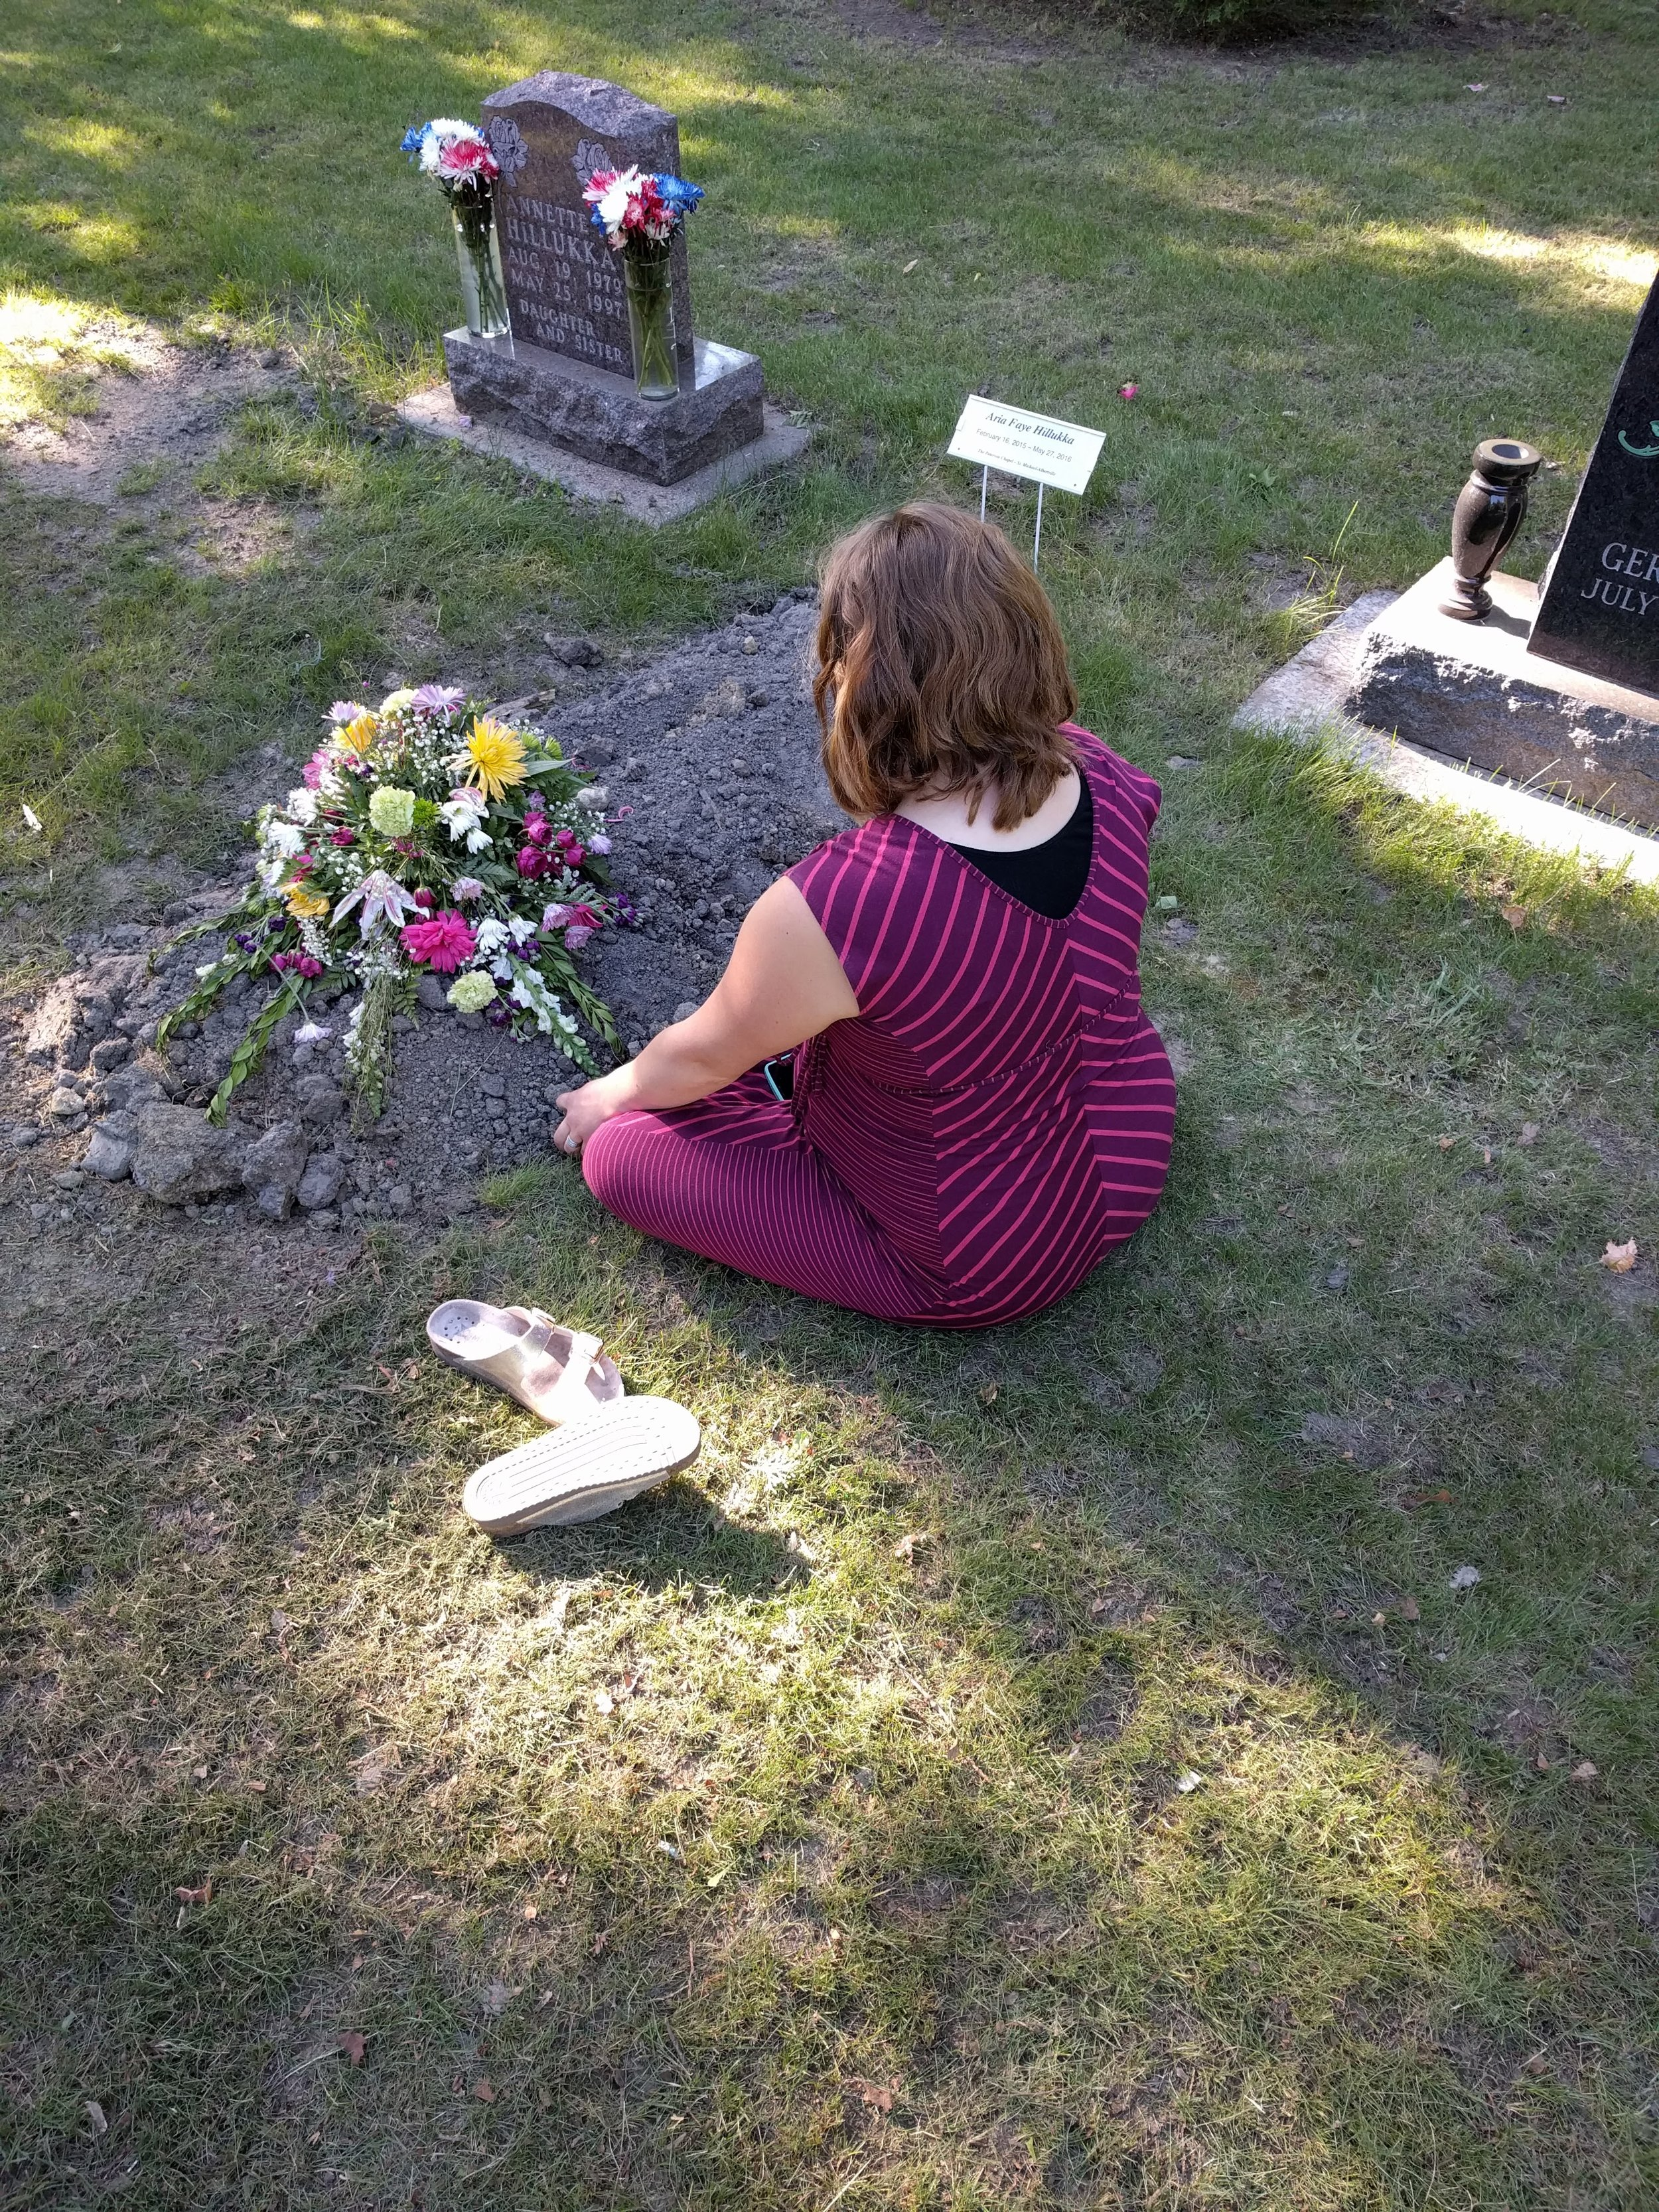 Aria is buried next to her aunt Annette, who had died 19 years and 2 days earlier than her at the age of 17 years old. Aria was named after her with her middle name Faye.